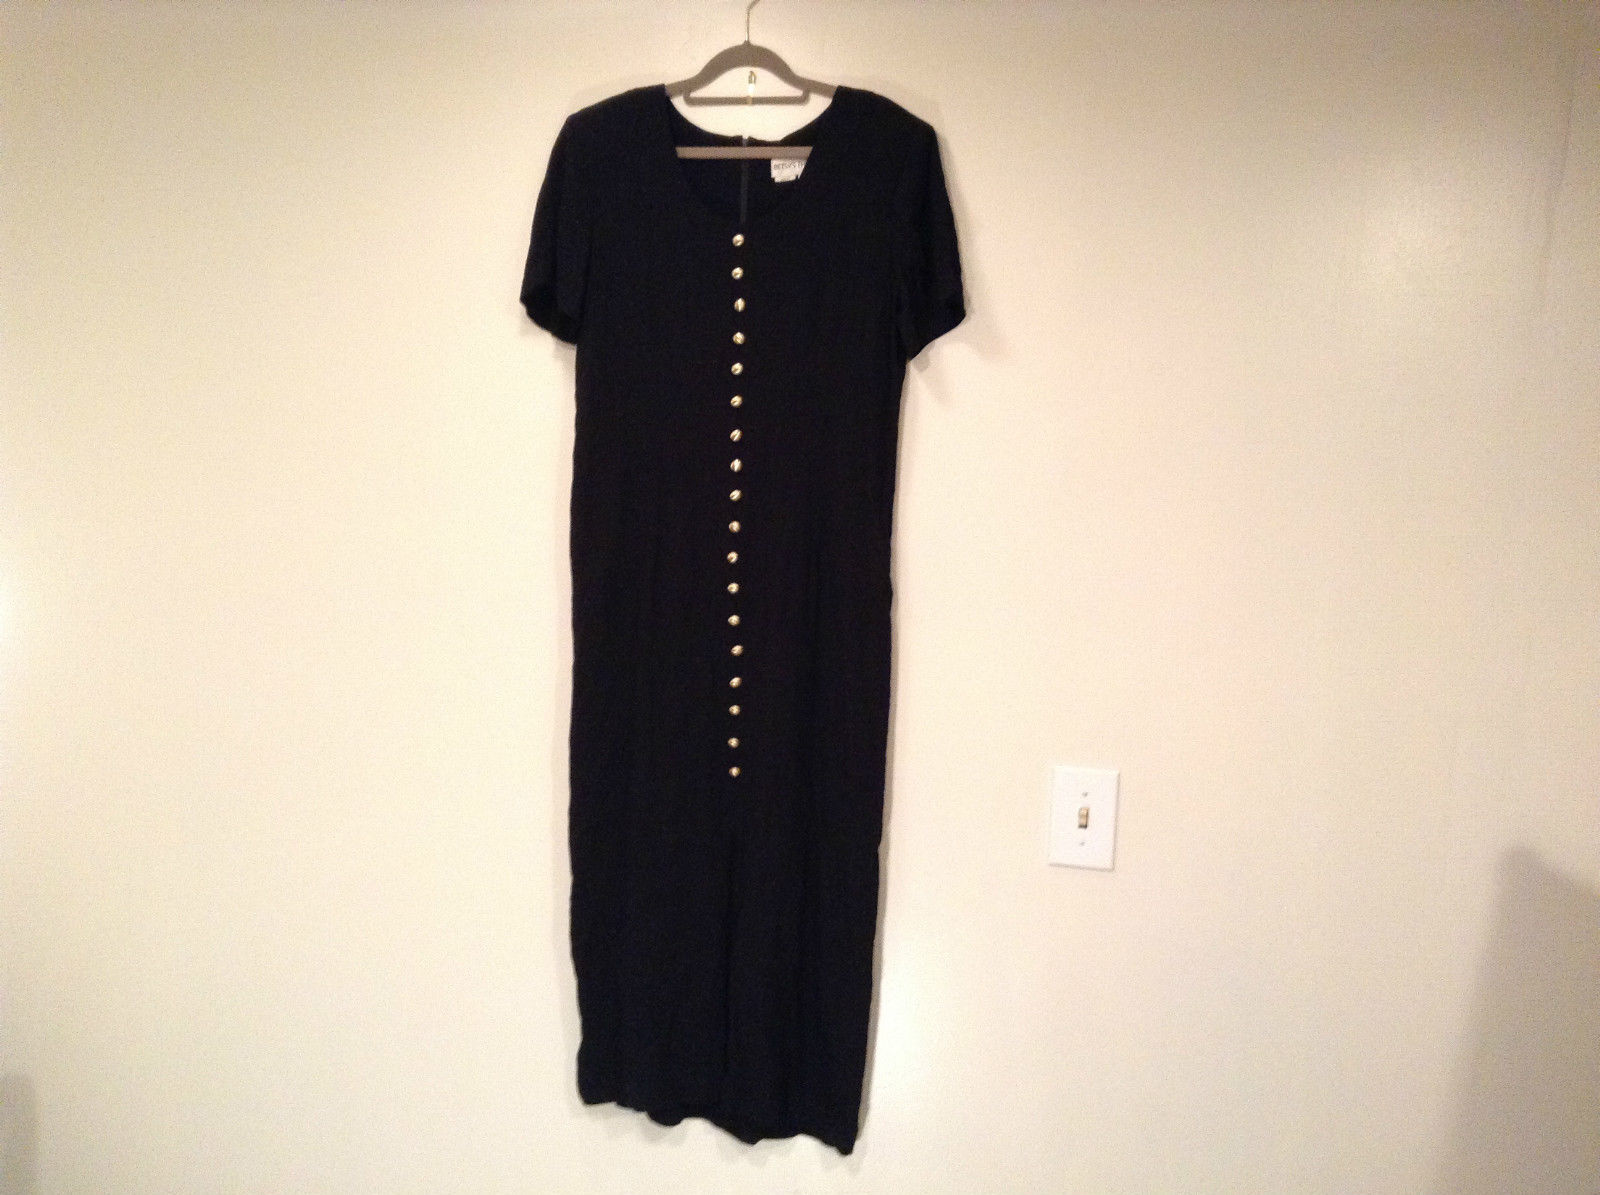 Betsys Things Size 12 Short Sleeve Black Dress Front Slit 18 Buttons on Front